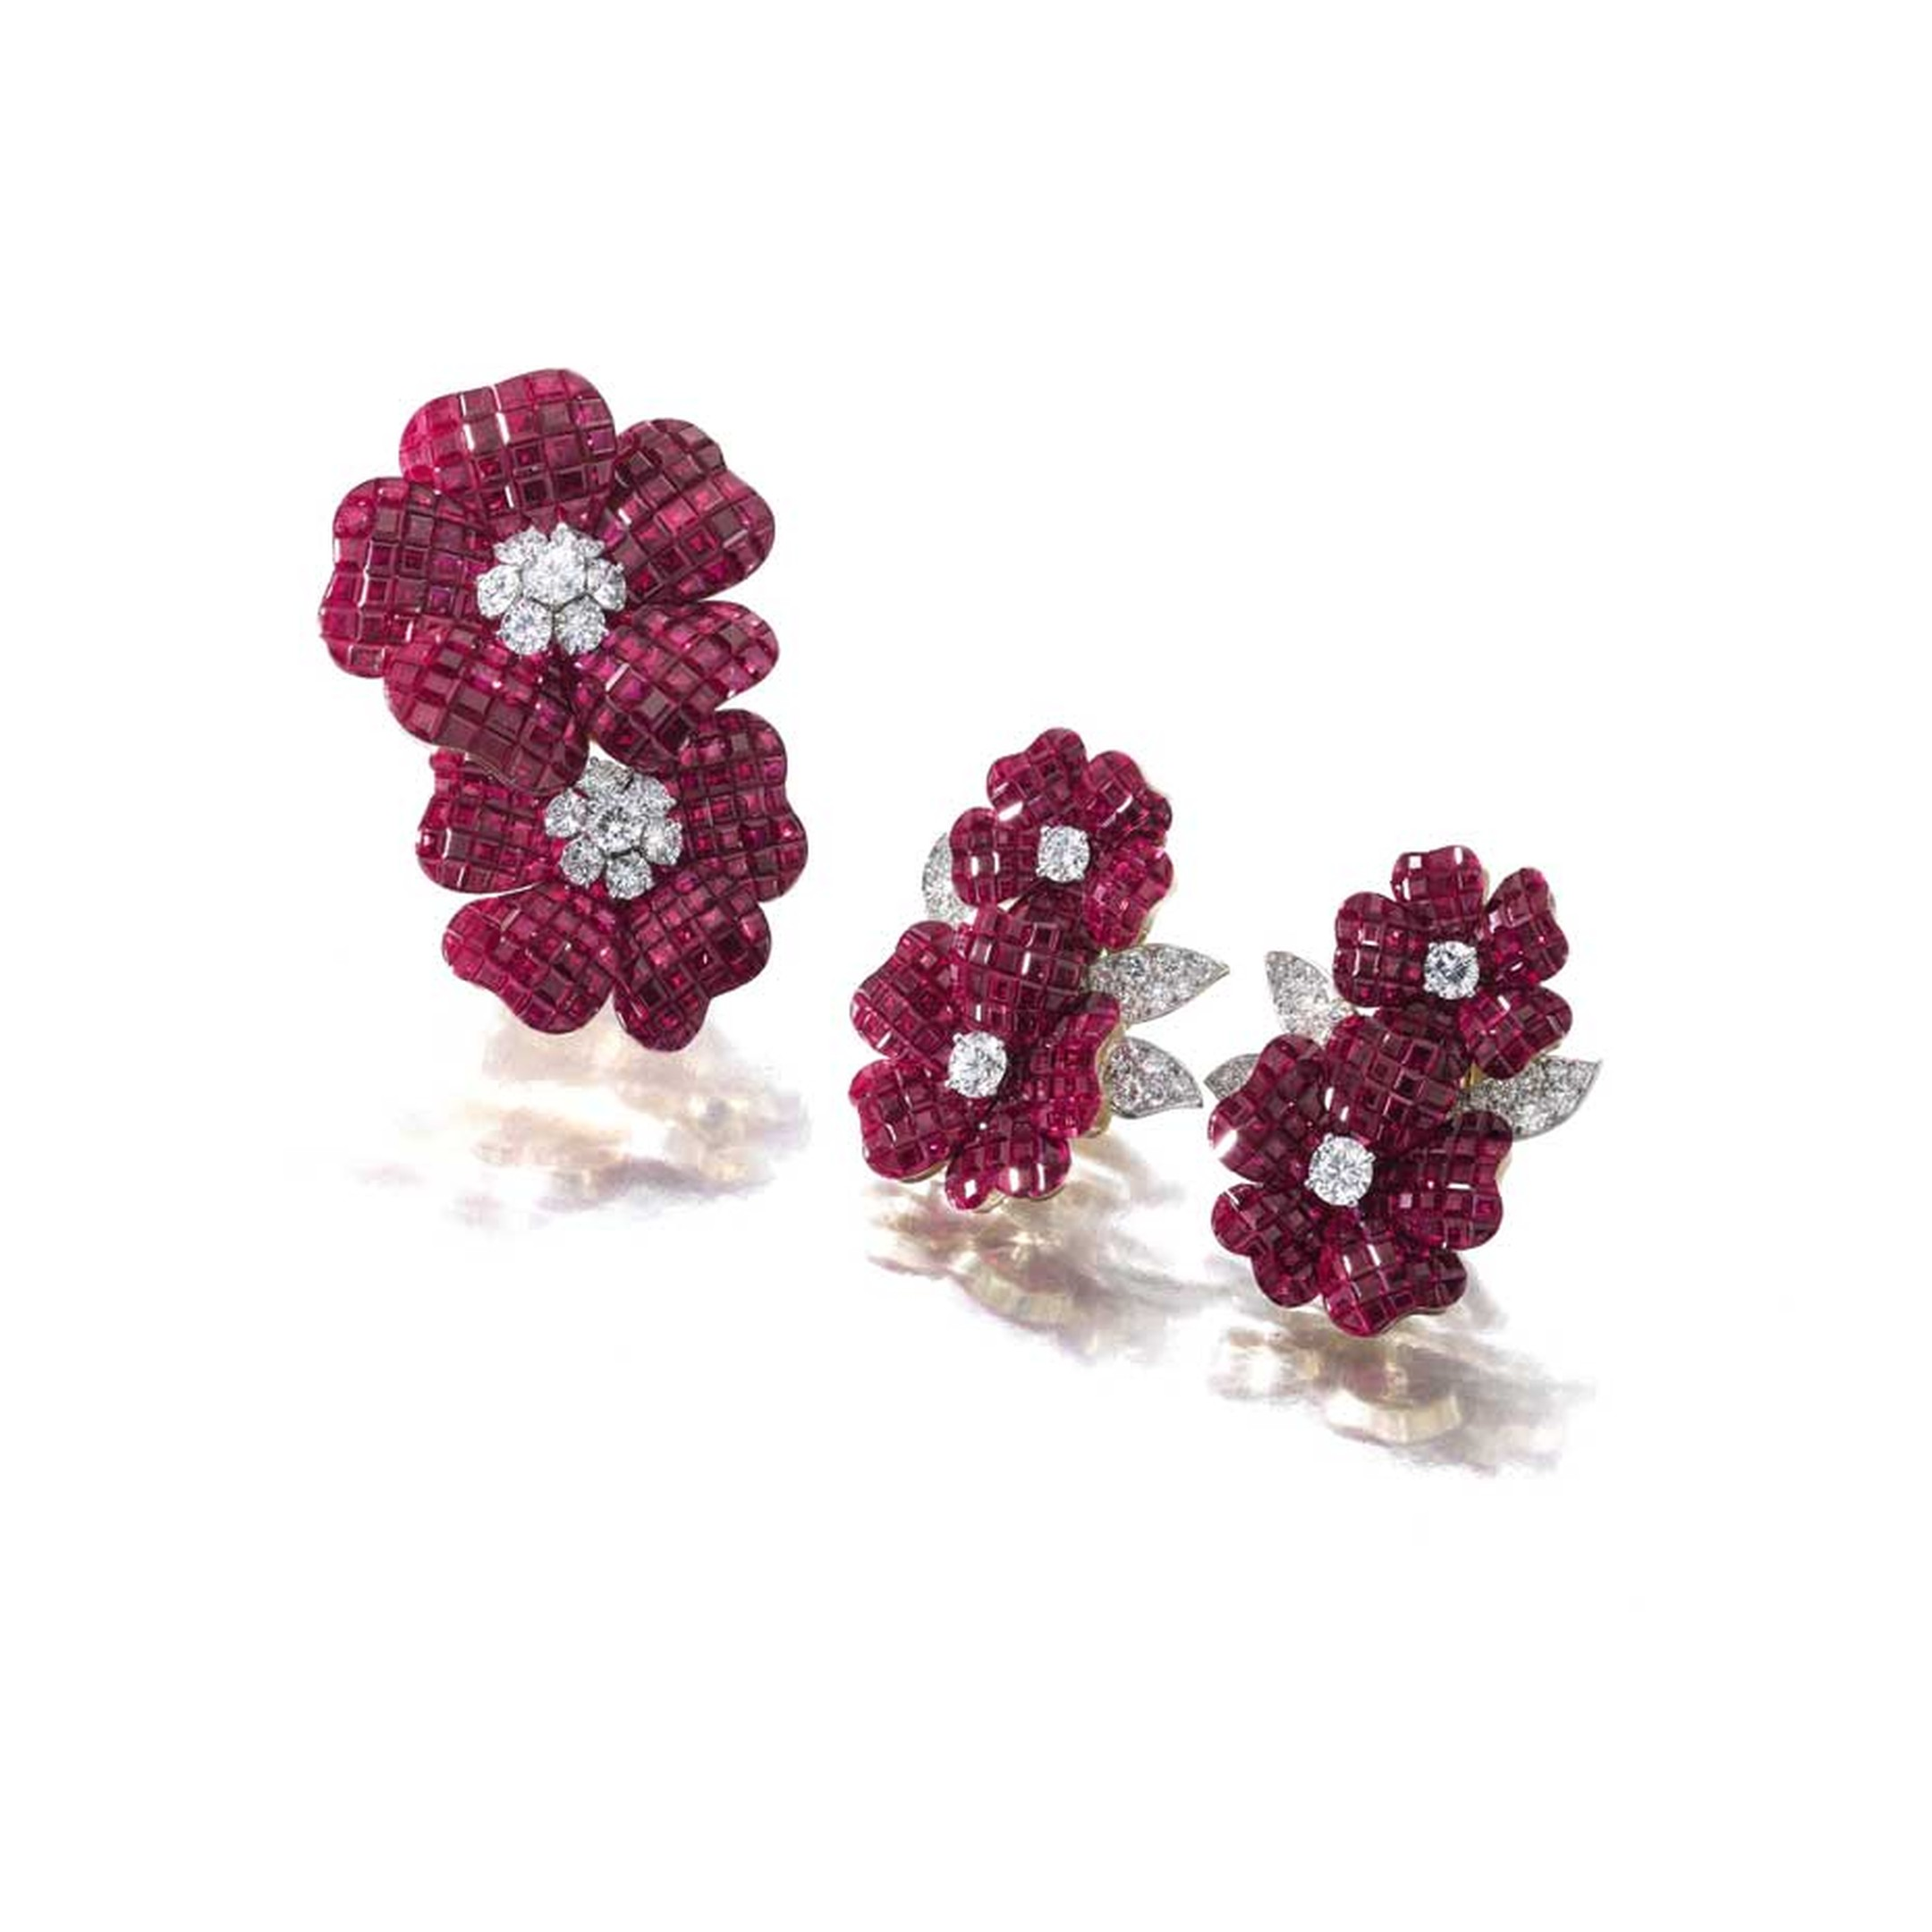 Van Cleef & Arpels ruby and diamond brooch and matching ear clips (brooch estimate: CHF 135,000 - 225,000/$150,000 - 250,000; ear clips estimate: CHF135,000 - 225,000/$150,000 - 250,000)